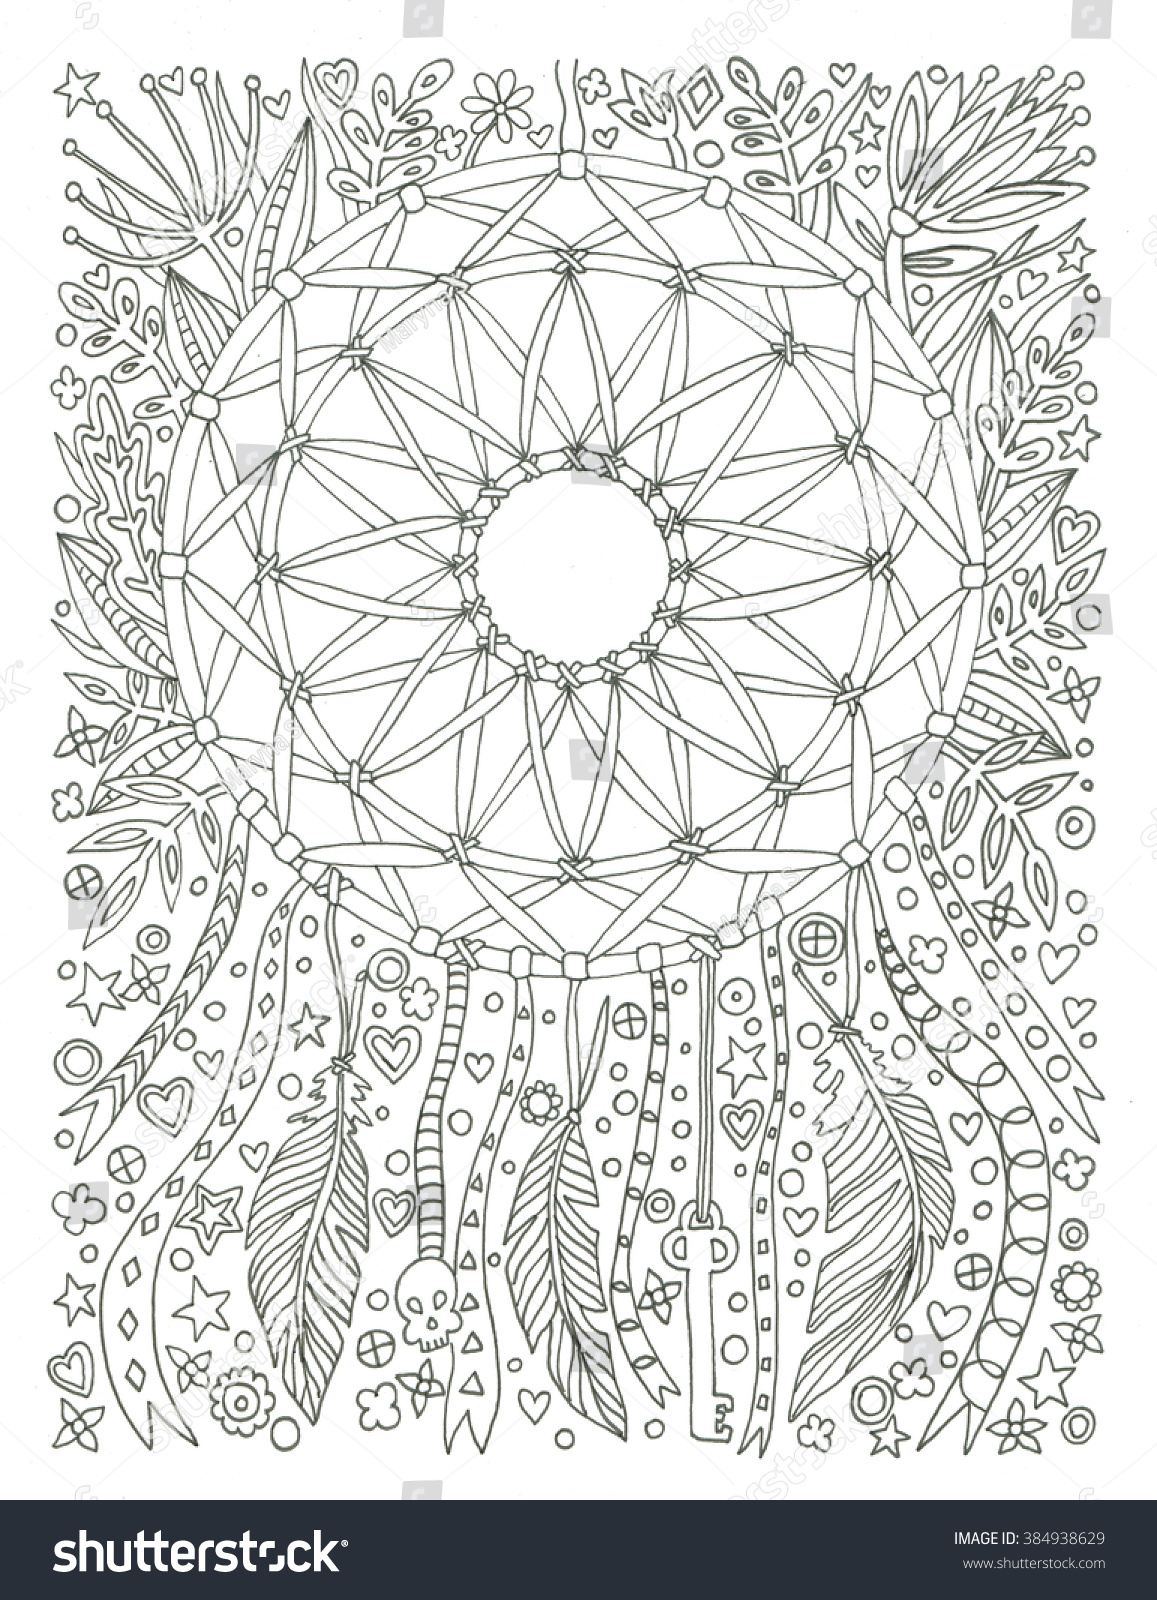 dream catcher coloring page stock illustration 384938629